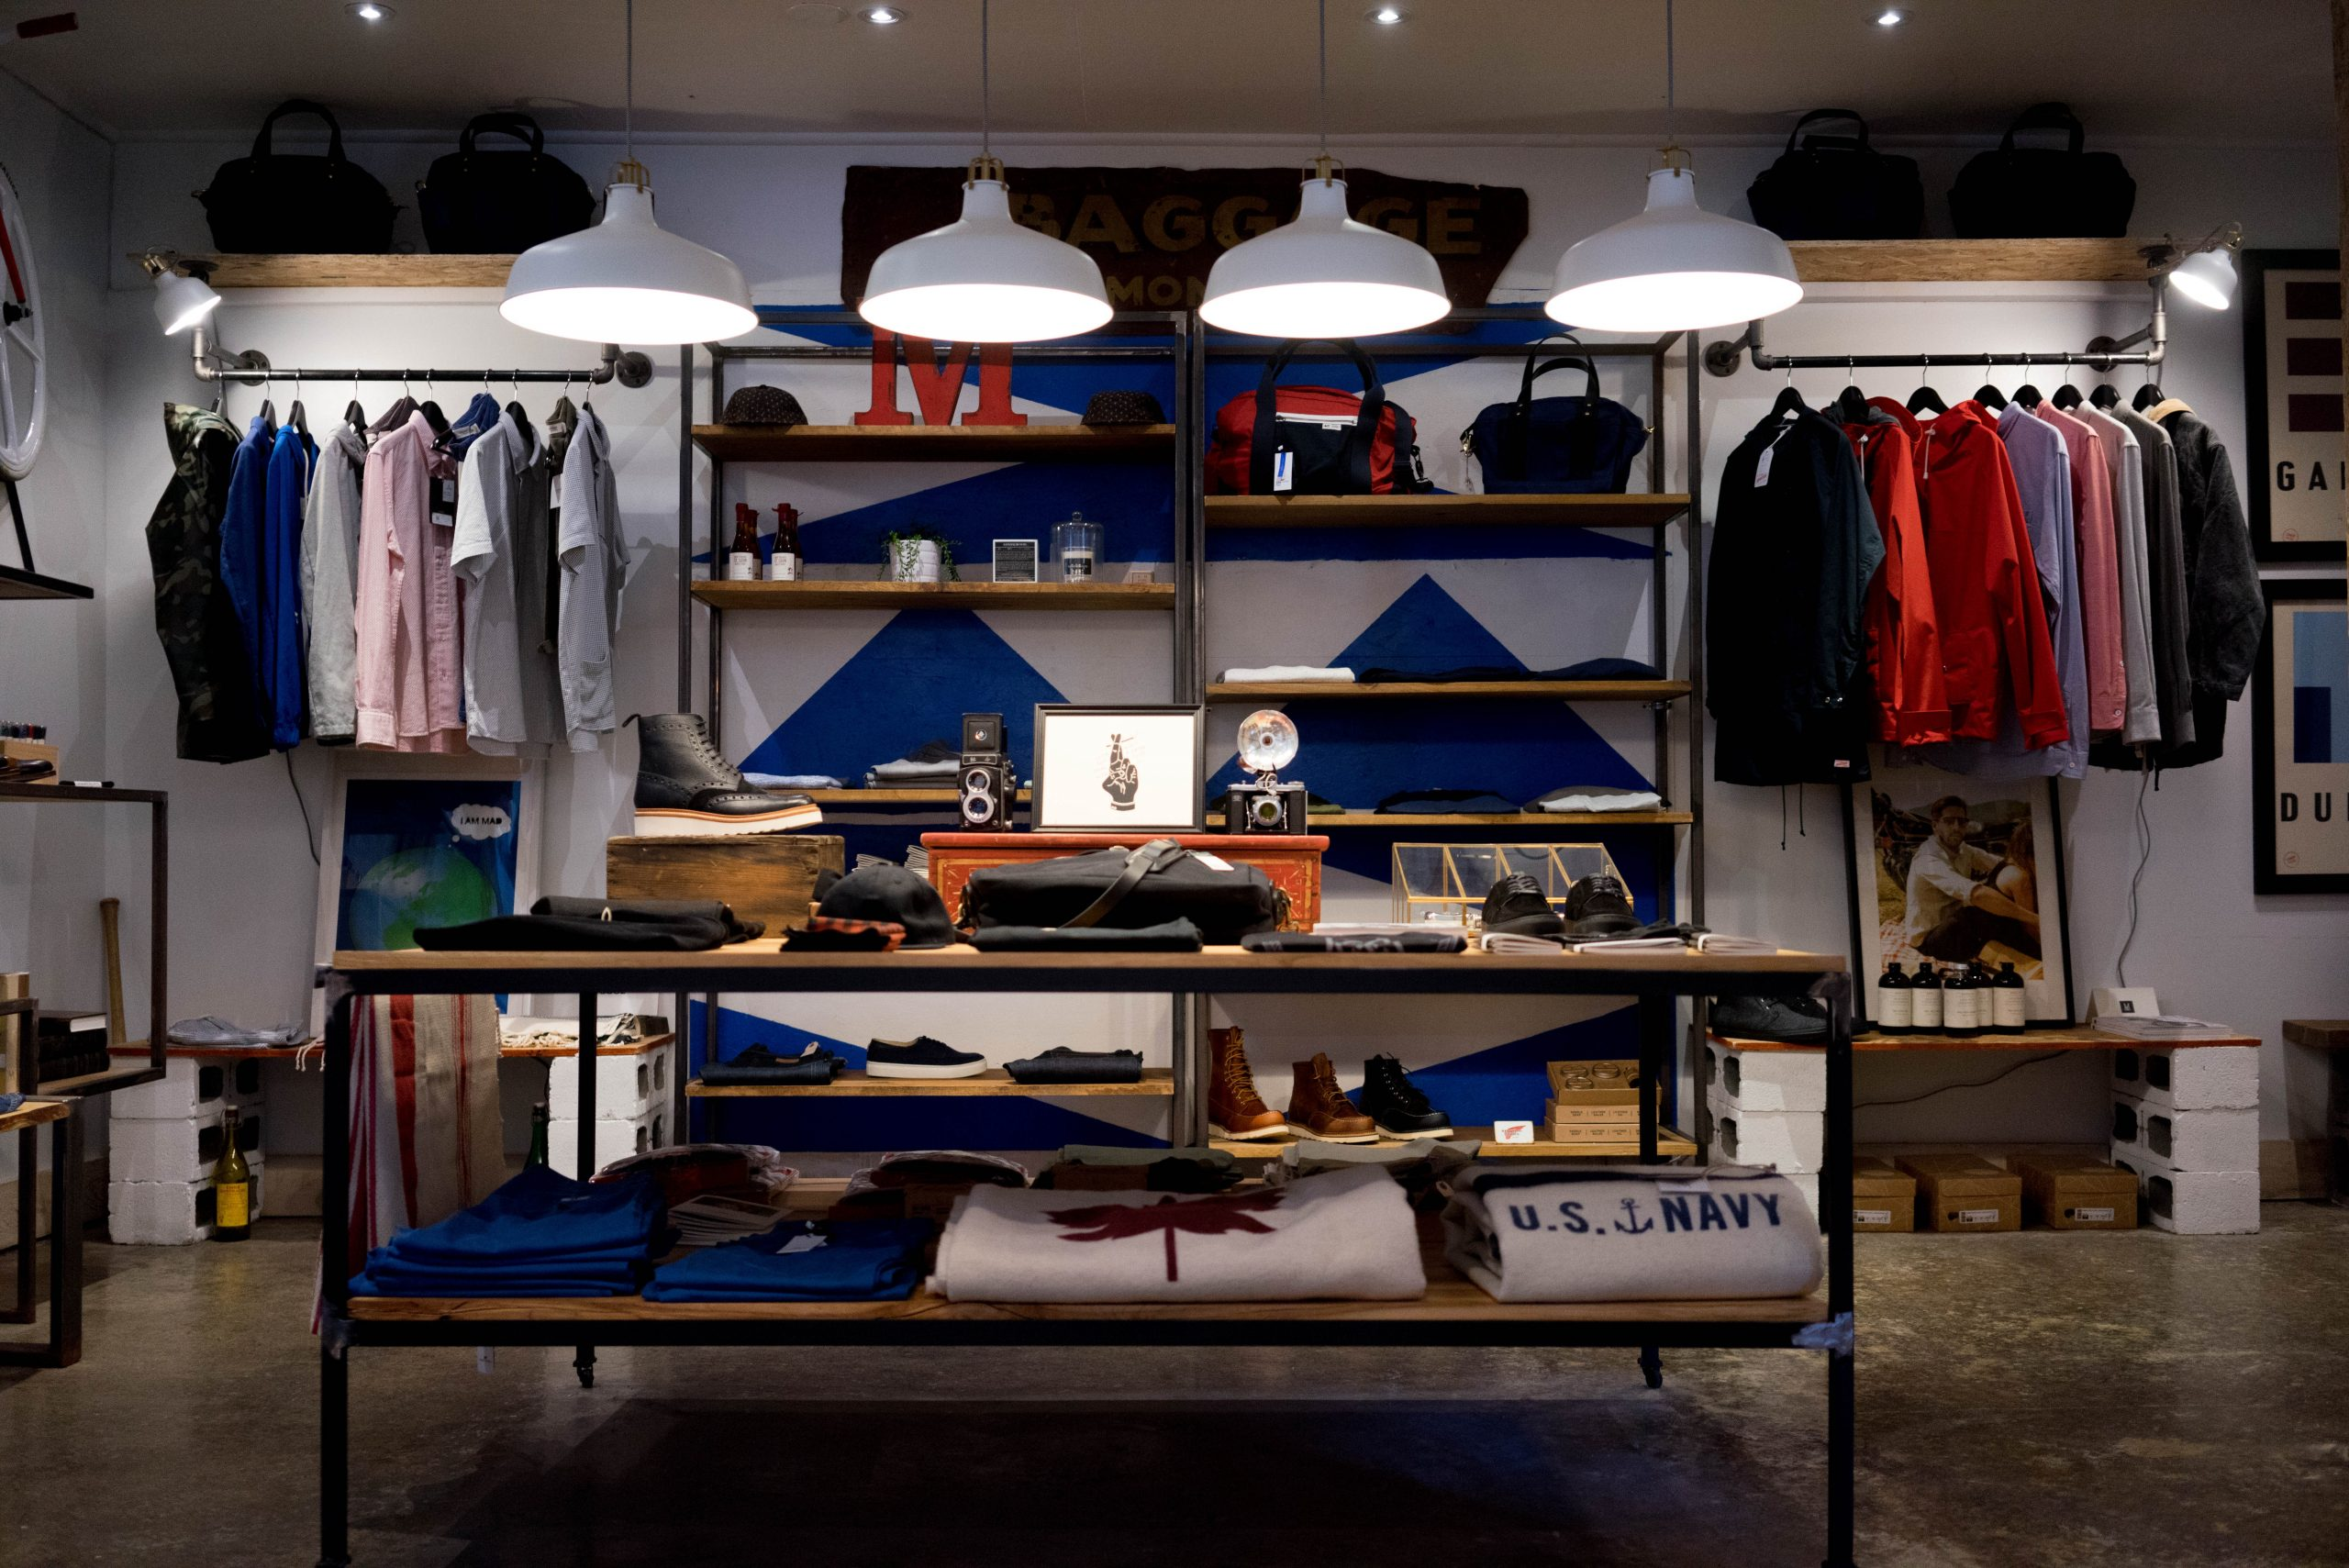 Image of retail - apparel shop